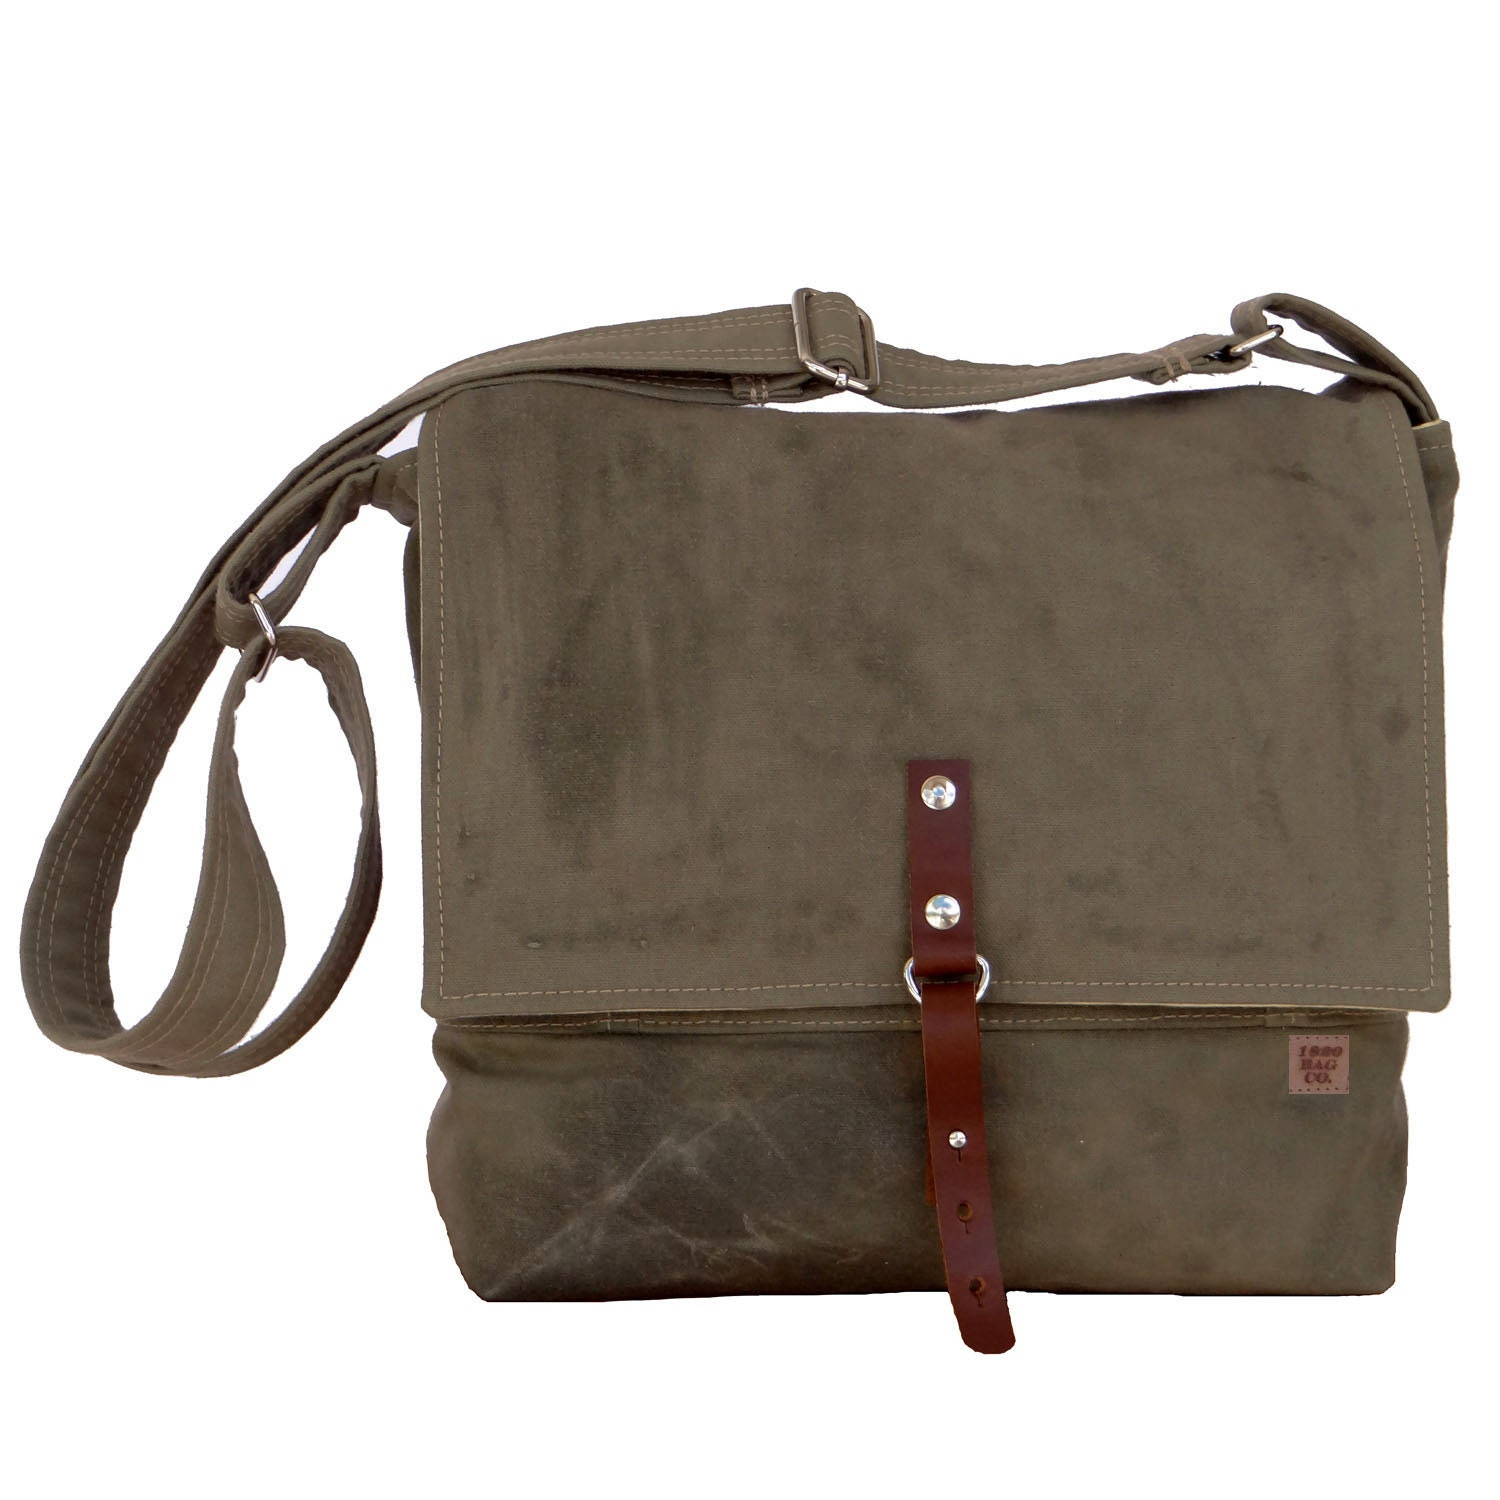 The Tanner Goods waxed canvas range covers a host of carry scenarios with styles including backpacks, totes, duffels, bike bags, boot bags and dopp kits. From the Wilderness Rucksack to the Everyday Tote, these attractive and hard-wearing haulers have travel, outdoor adventuring and day-to-day carry needs well in hand.